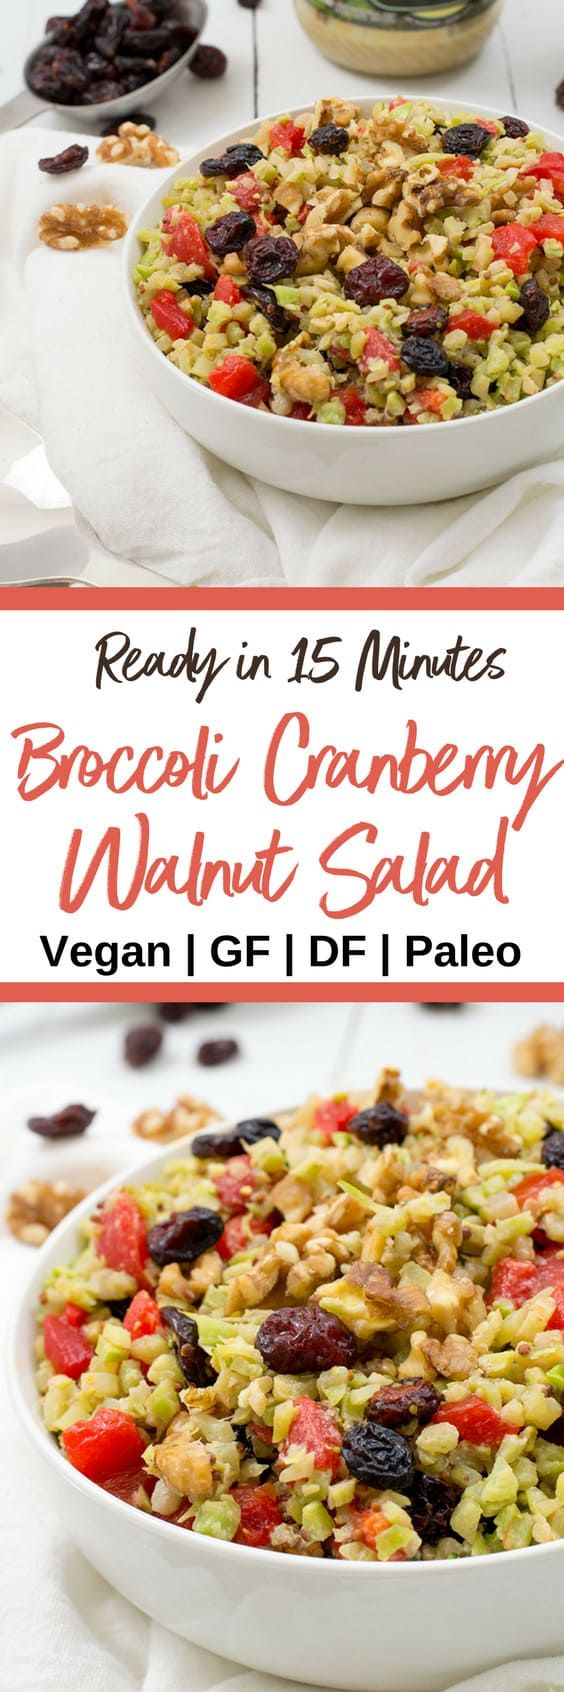 This vegan broccoli cranberry walnut salad is the perfect lunch recipe! Paleo, grain free, gluten free and so simple!